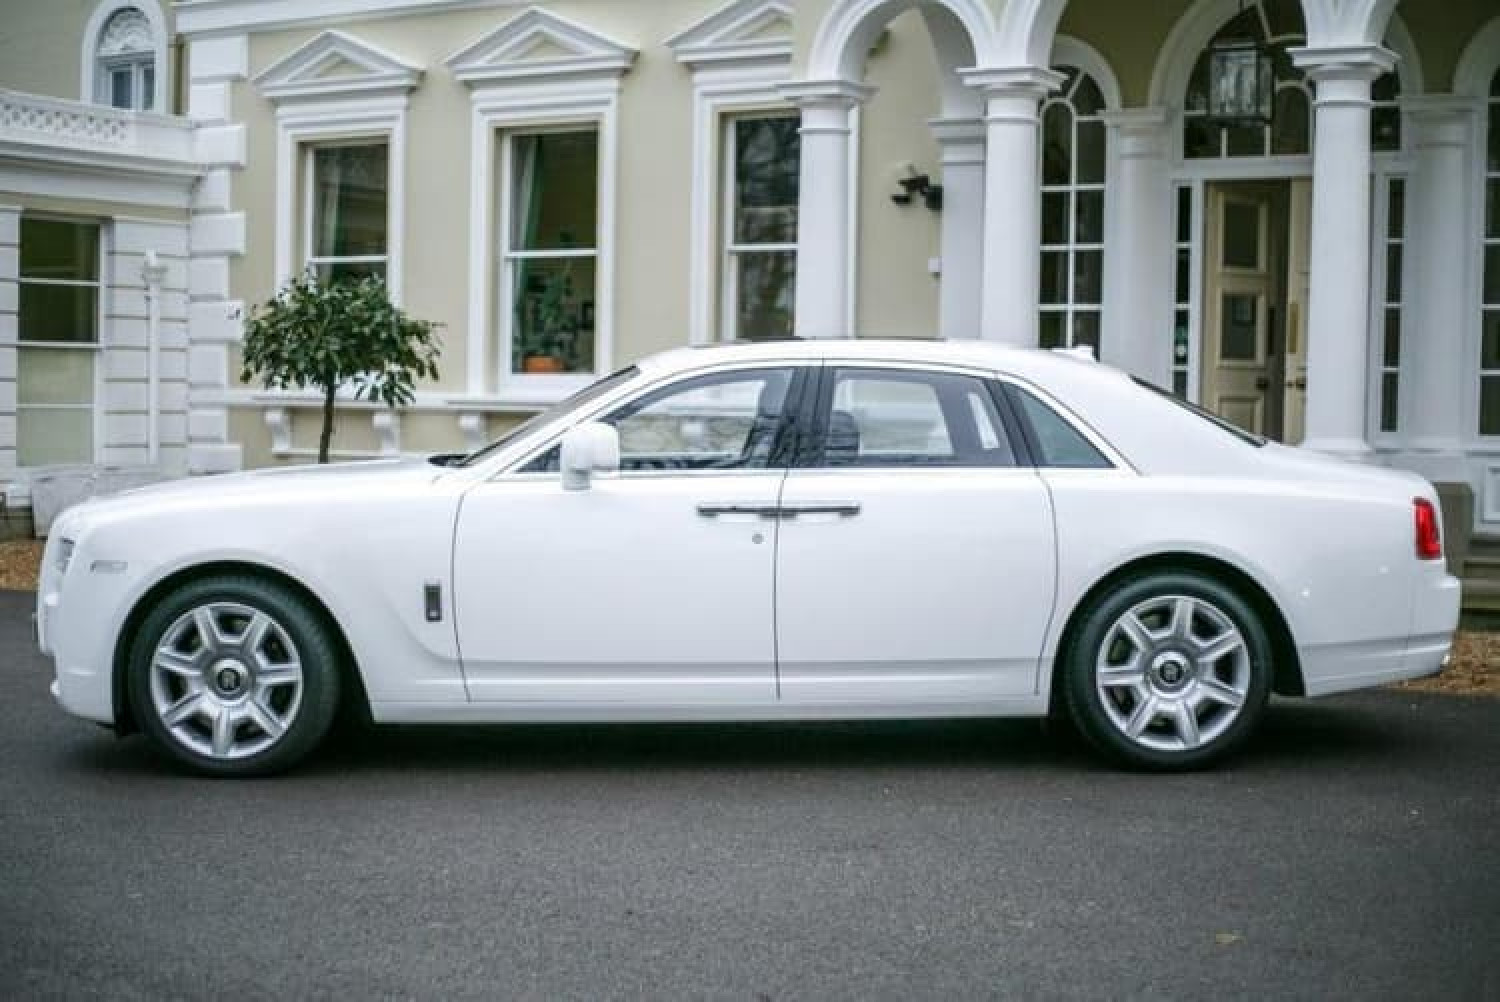 Get The White Rolls Royce Ghost Hire Wedding Car Infographic